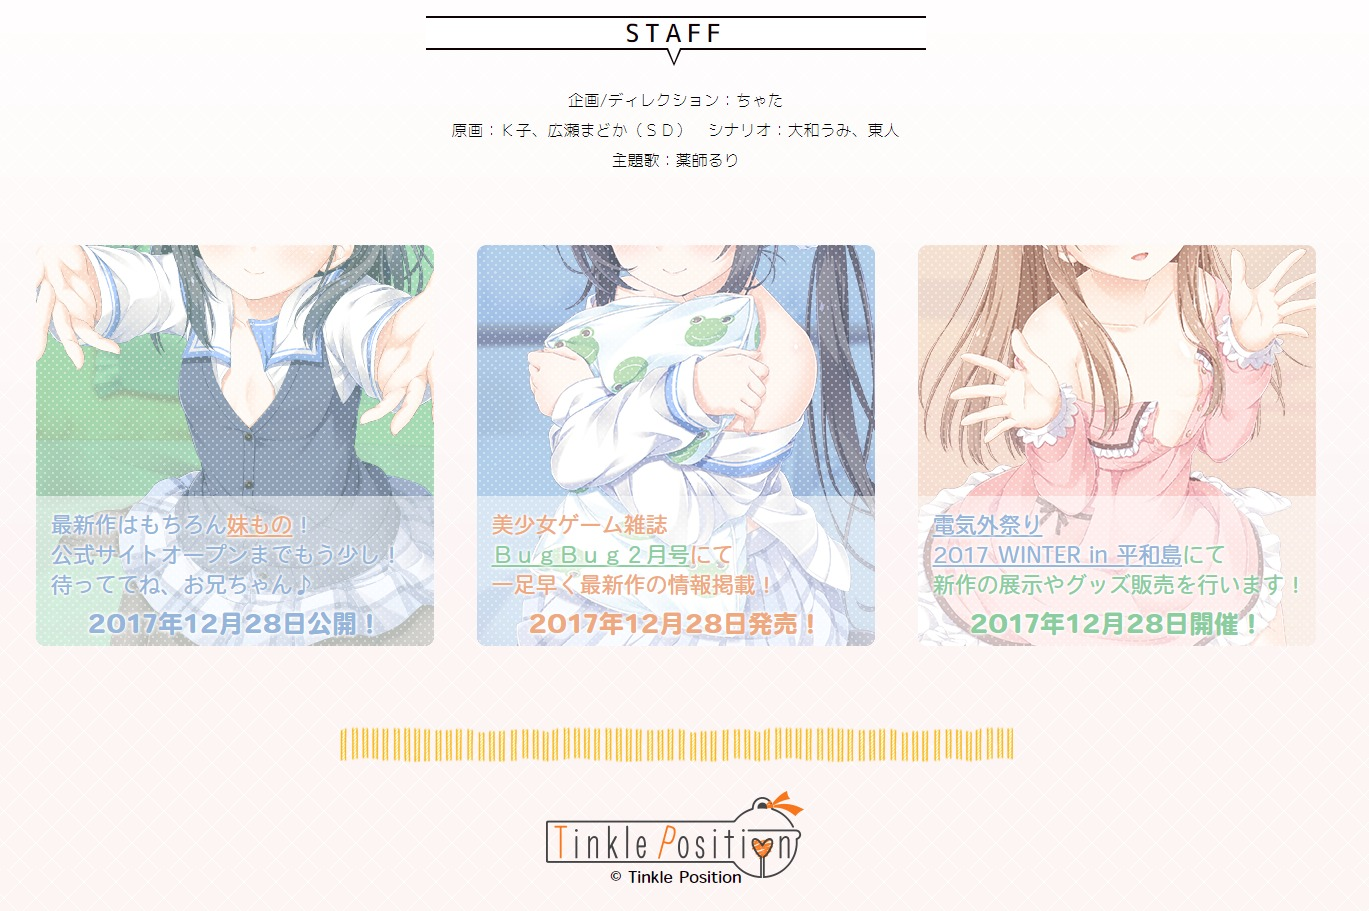 Tinkle Position 2nd Project Teaser Site 毎日妹日、ハグ三昧♡